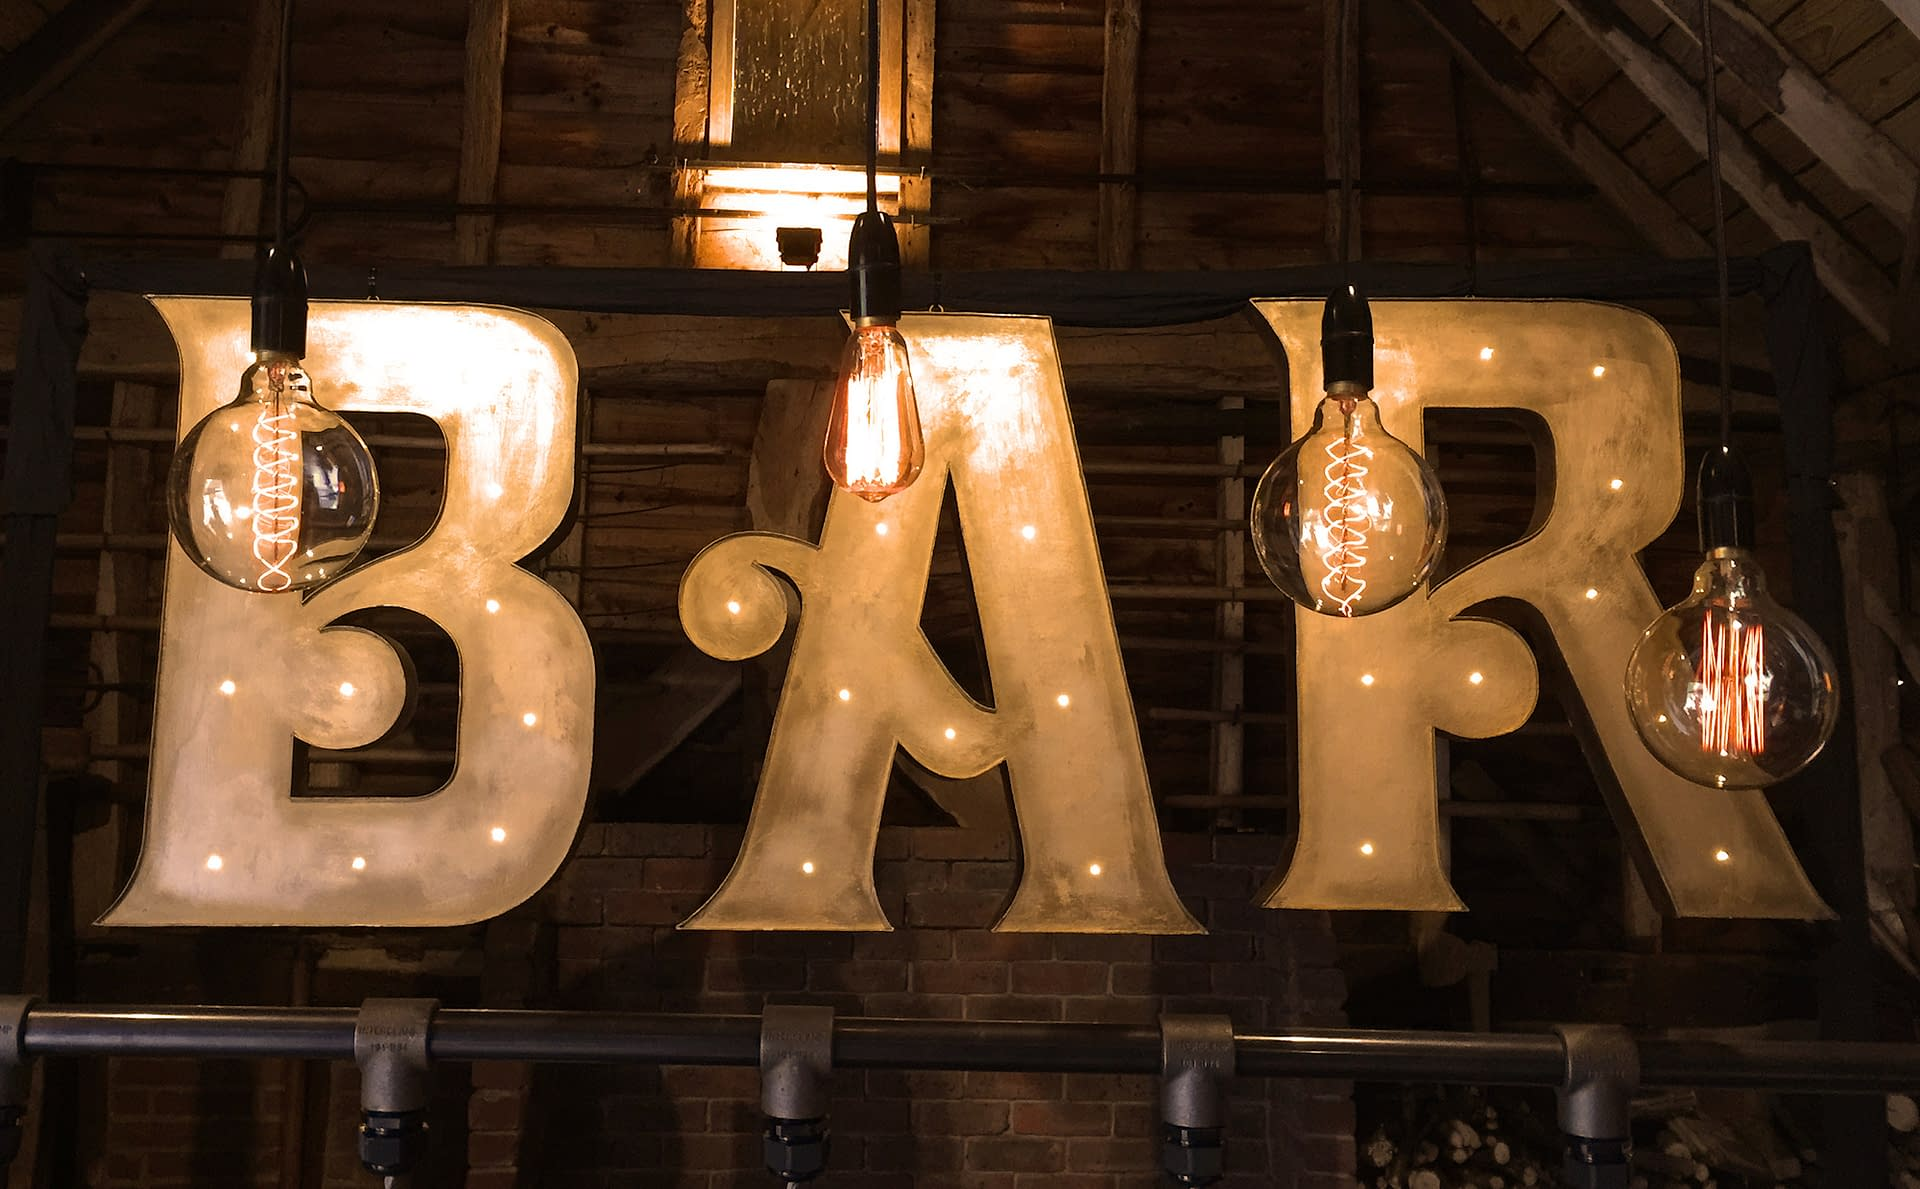 Large illuminated BAR letter props with retro filament lamps hung overhead at Gildings Barn in Surrey UK